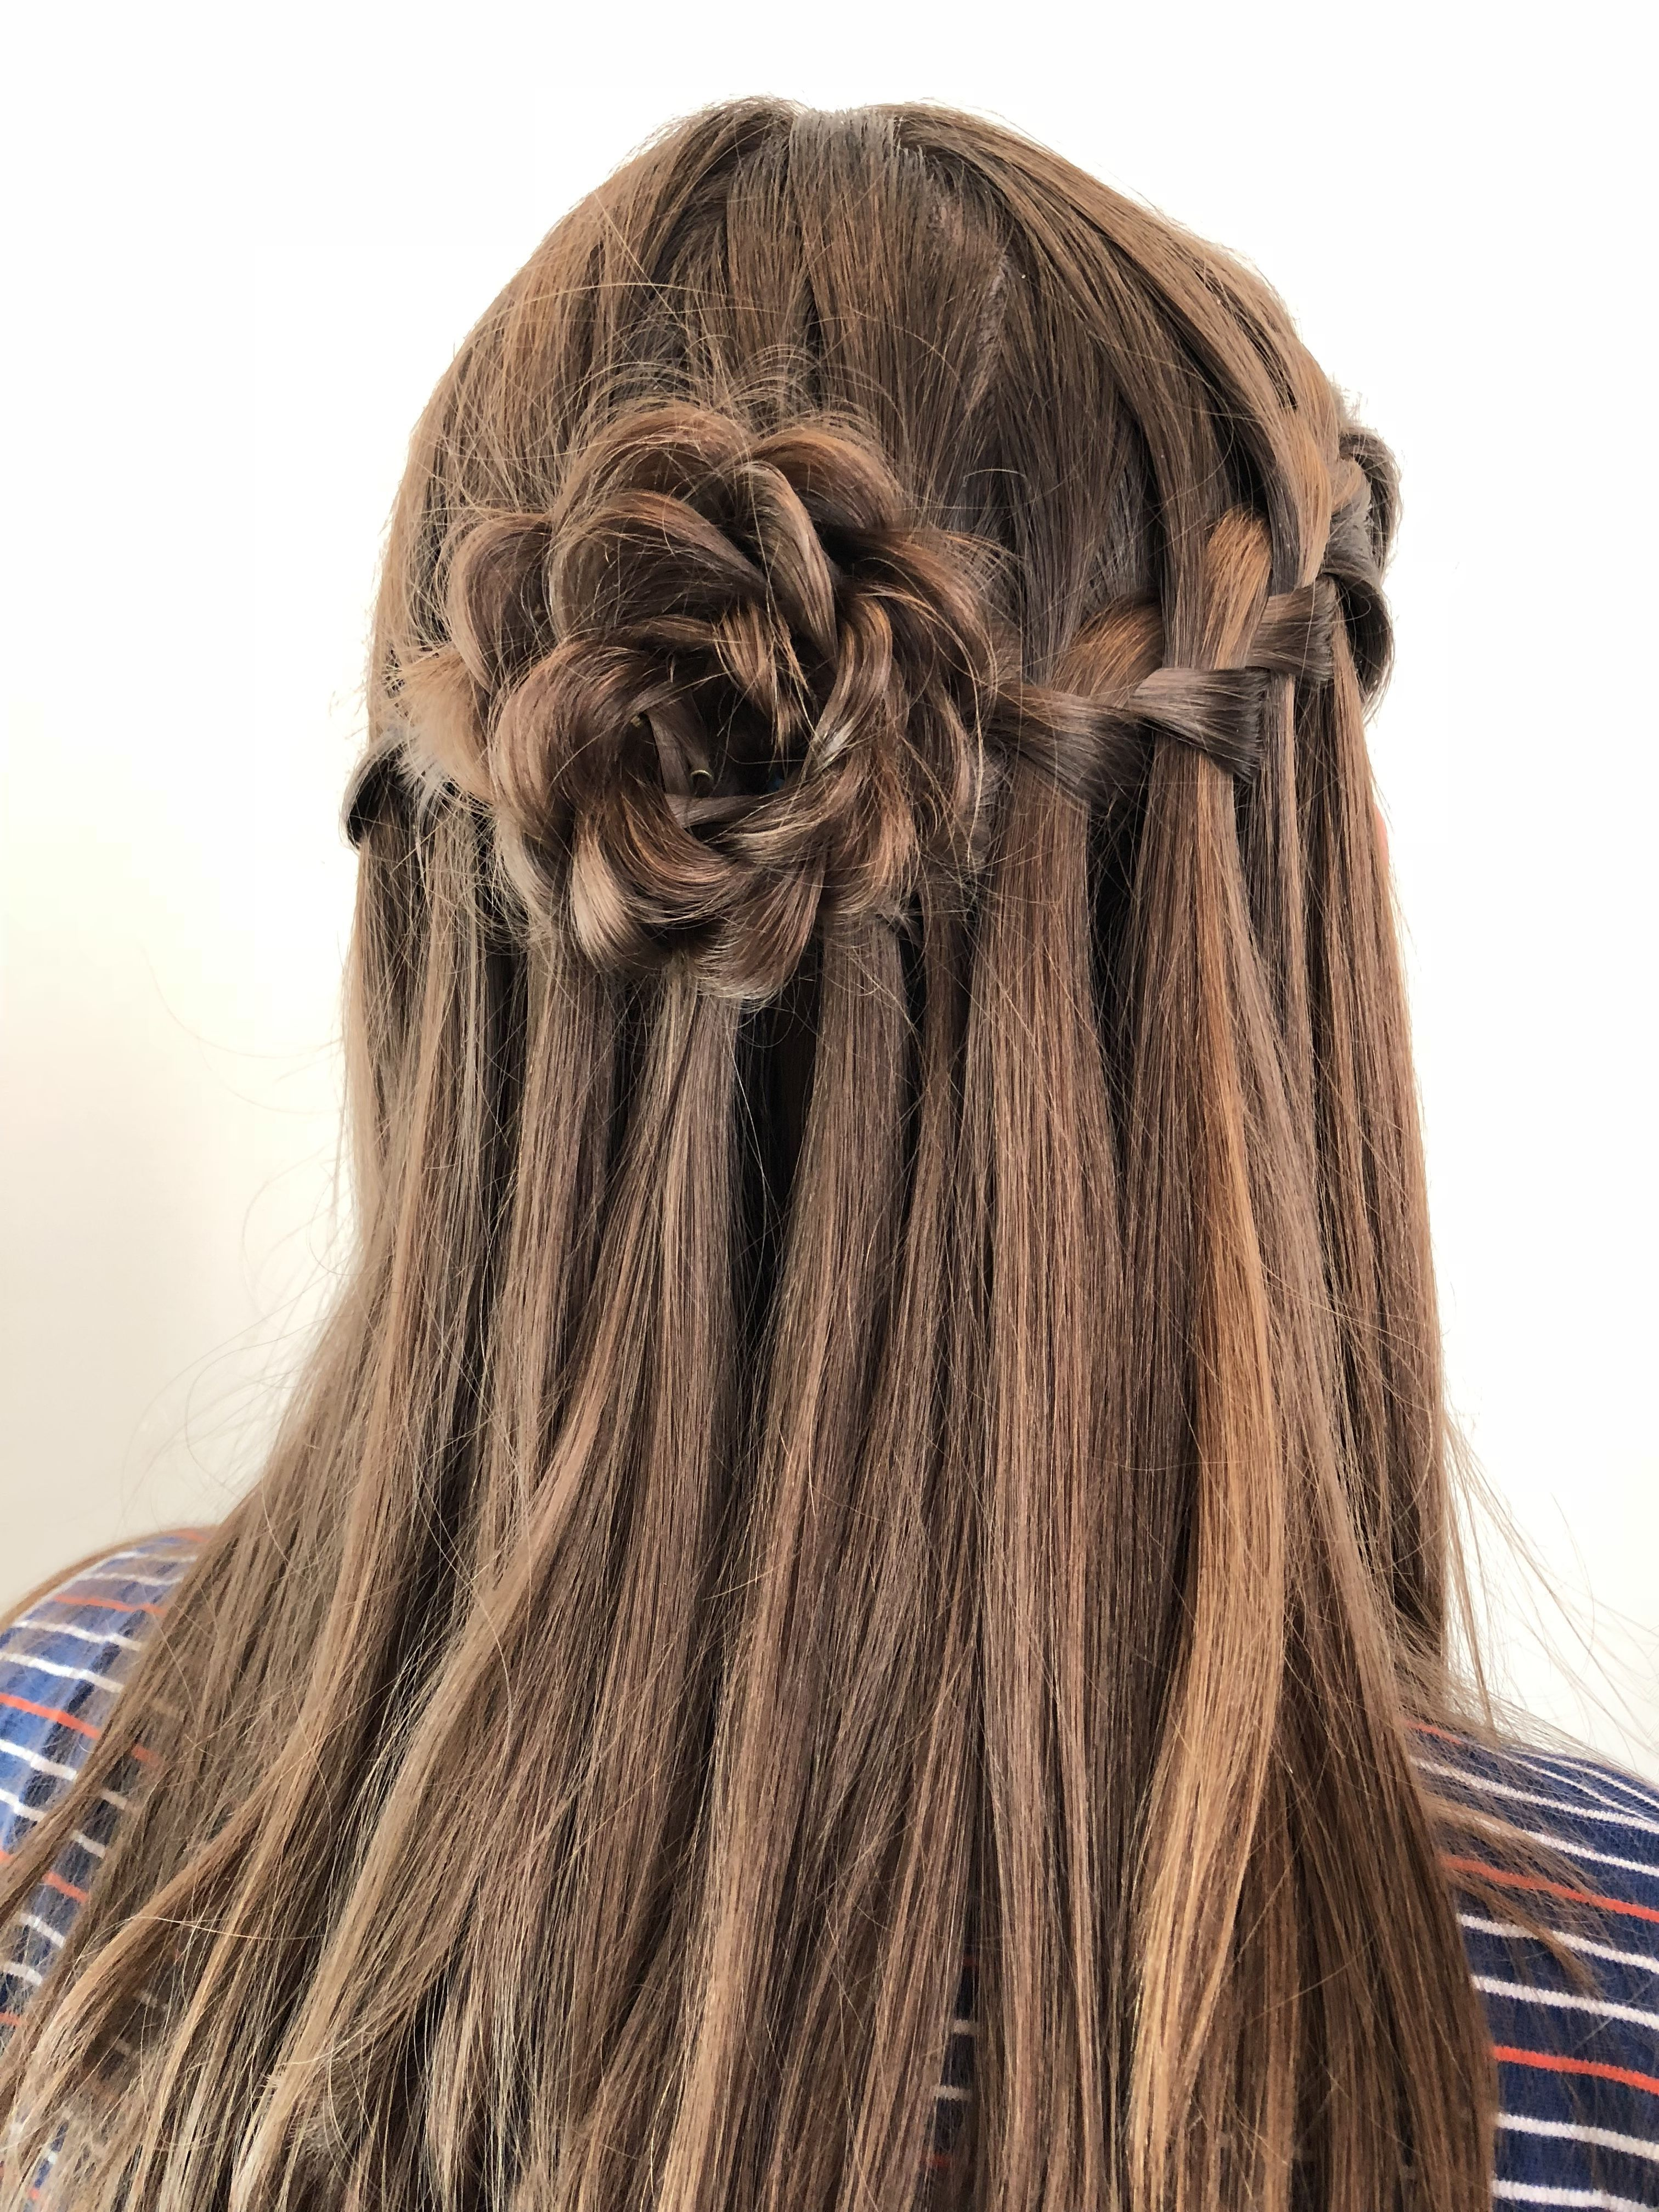 Half Up Half Down Rosette Hairstyle Weddinghairstyles Medium Length Hair Styles Medium Hair Styles Prom Hairstyles For Long Hair